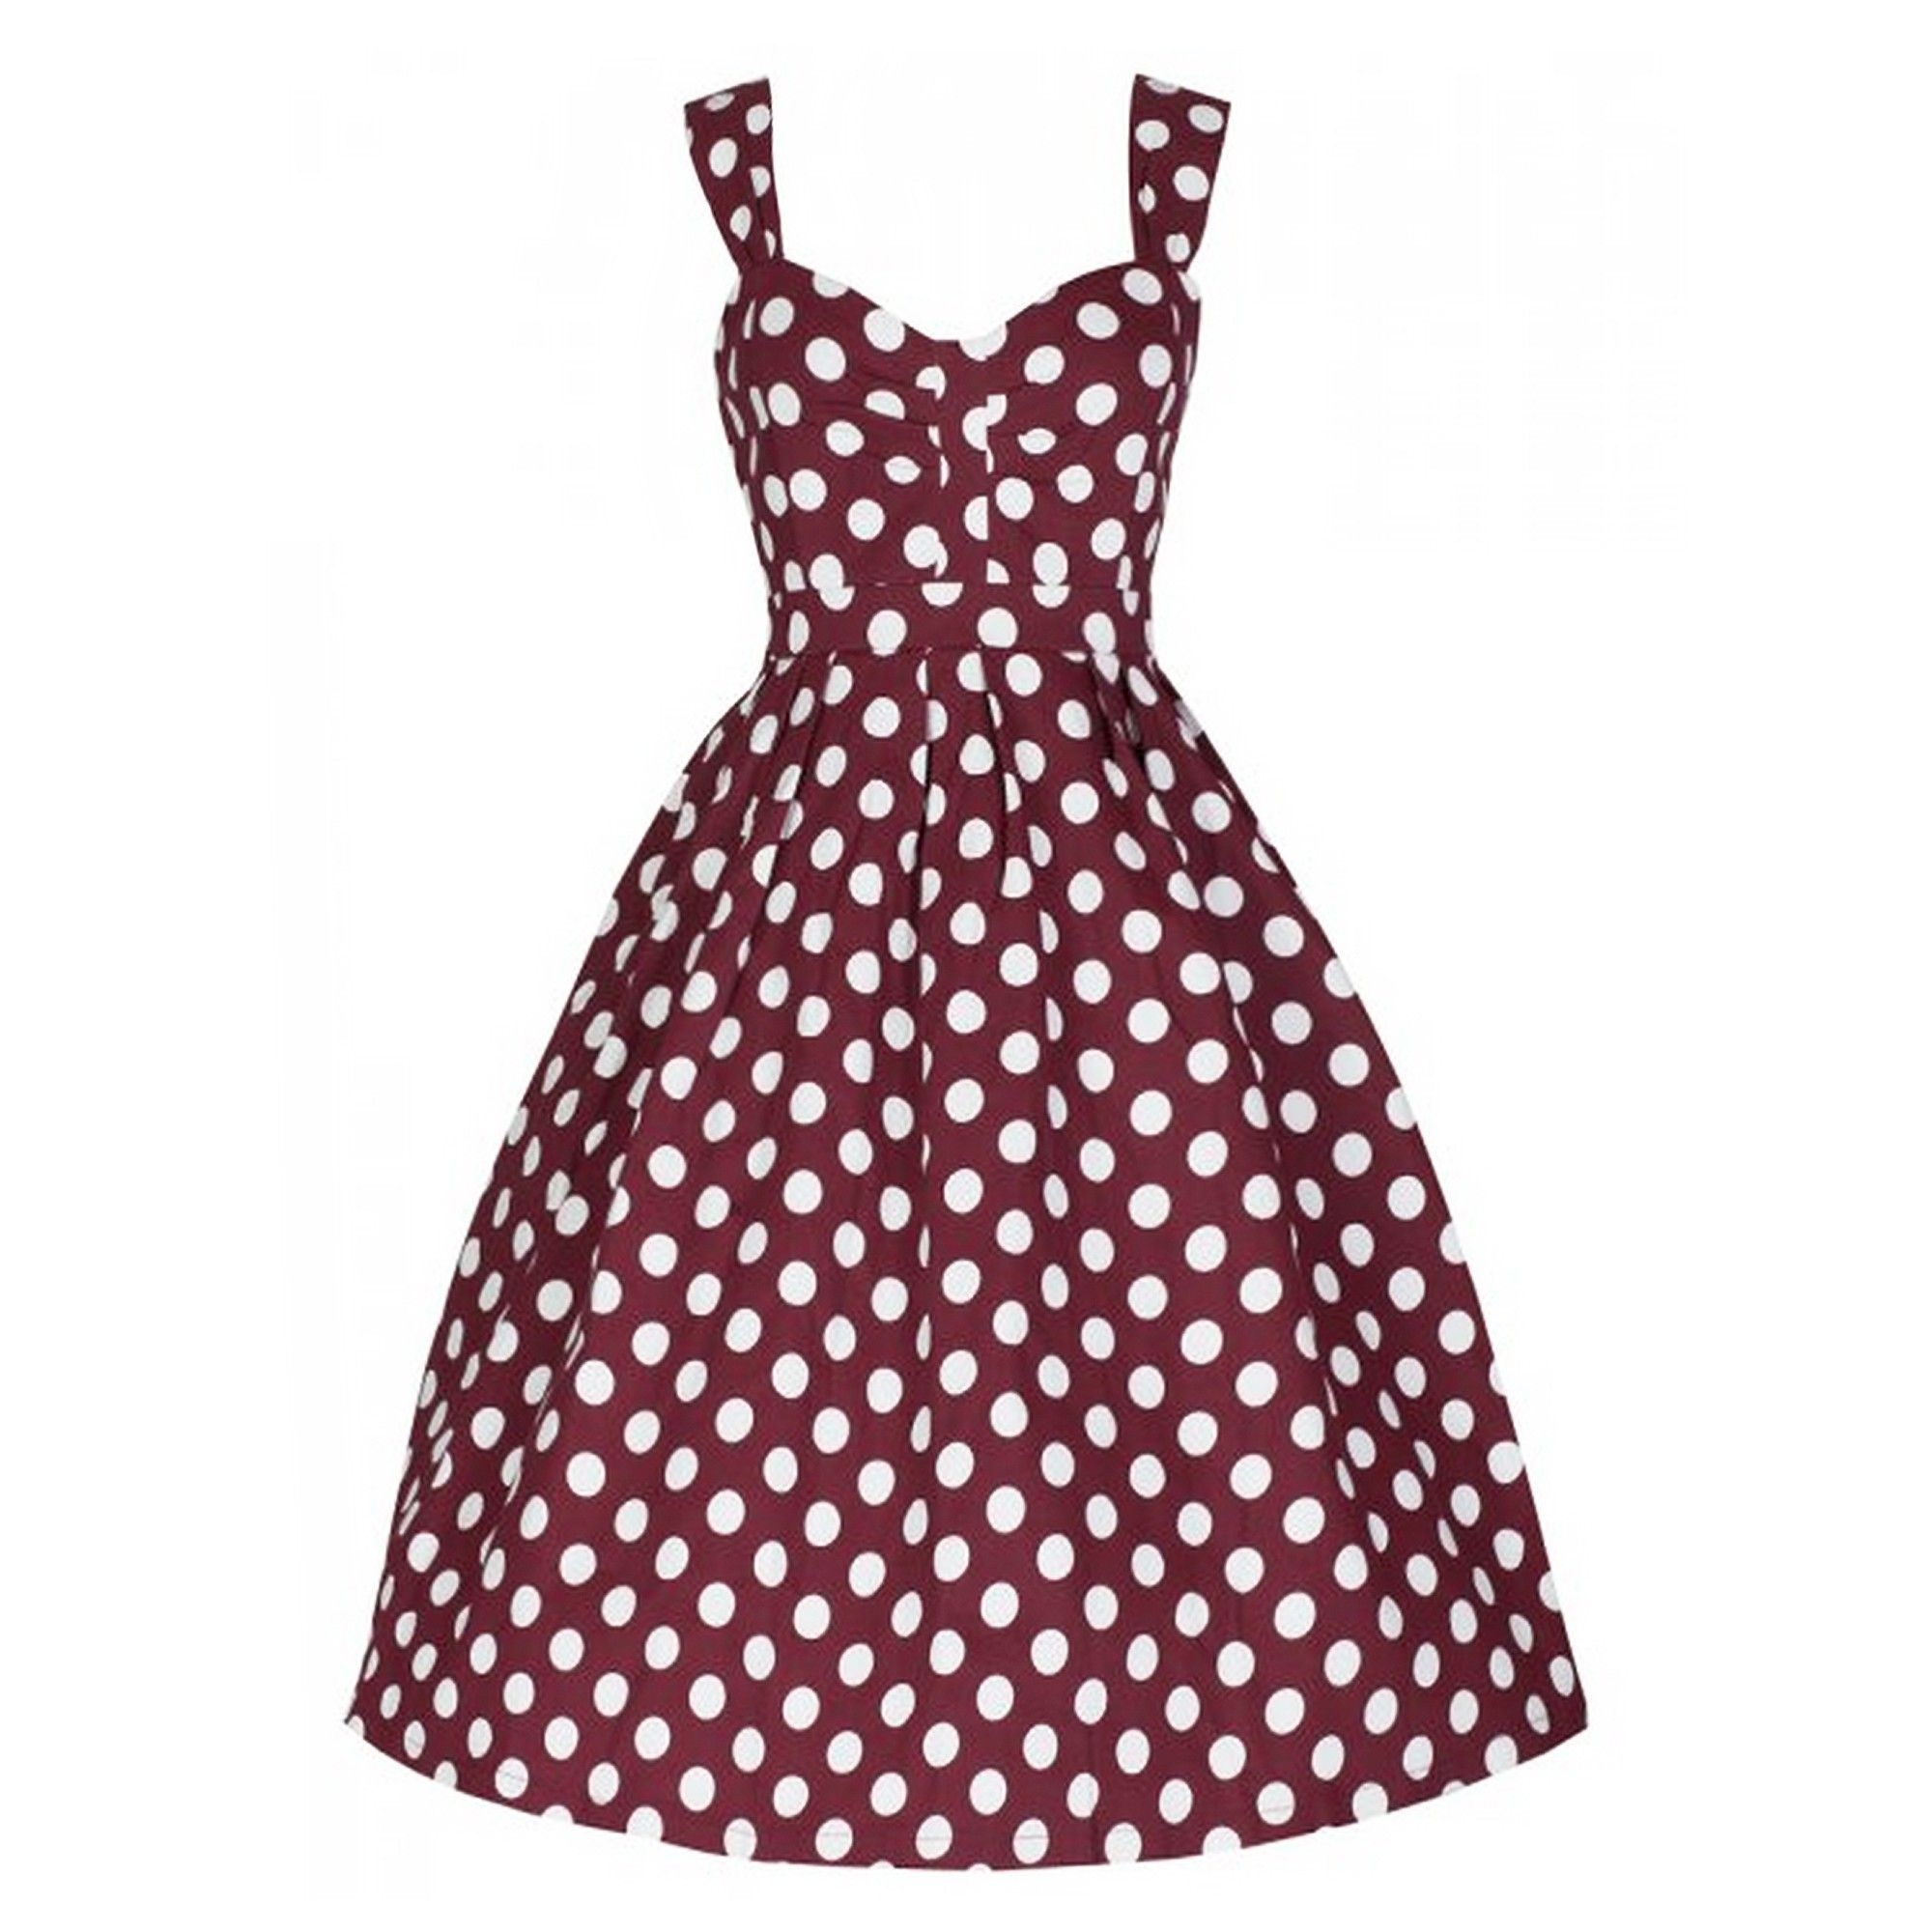 This classic burgundy polkadot dress evokes fun and summer, perfect for any special occasion. Its fitted waistline and pleated flared skirt enhances your silhouette and makes it perfect for any occasion. The measurement is from the shoulder strap to the hem. Please follow the size chart to measure and select your size.